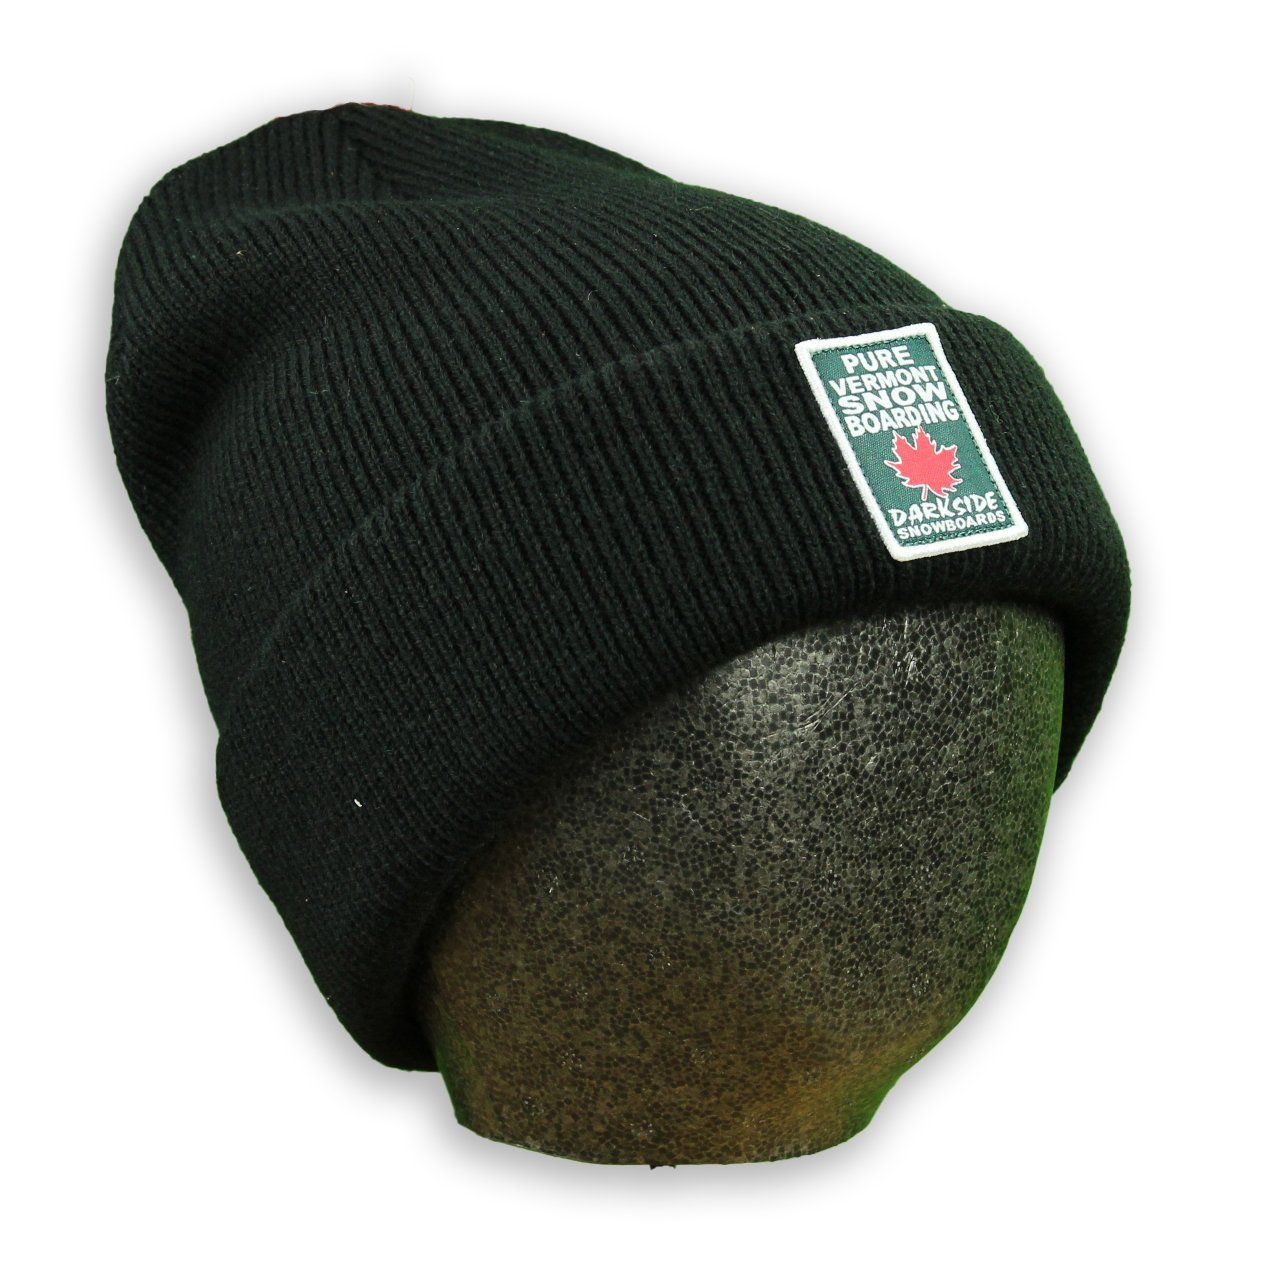 Darkside Pure VT Snowboarding Cuff Beanie (Multiple Color Options)